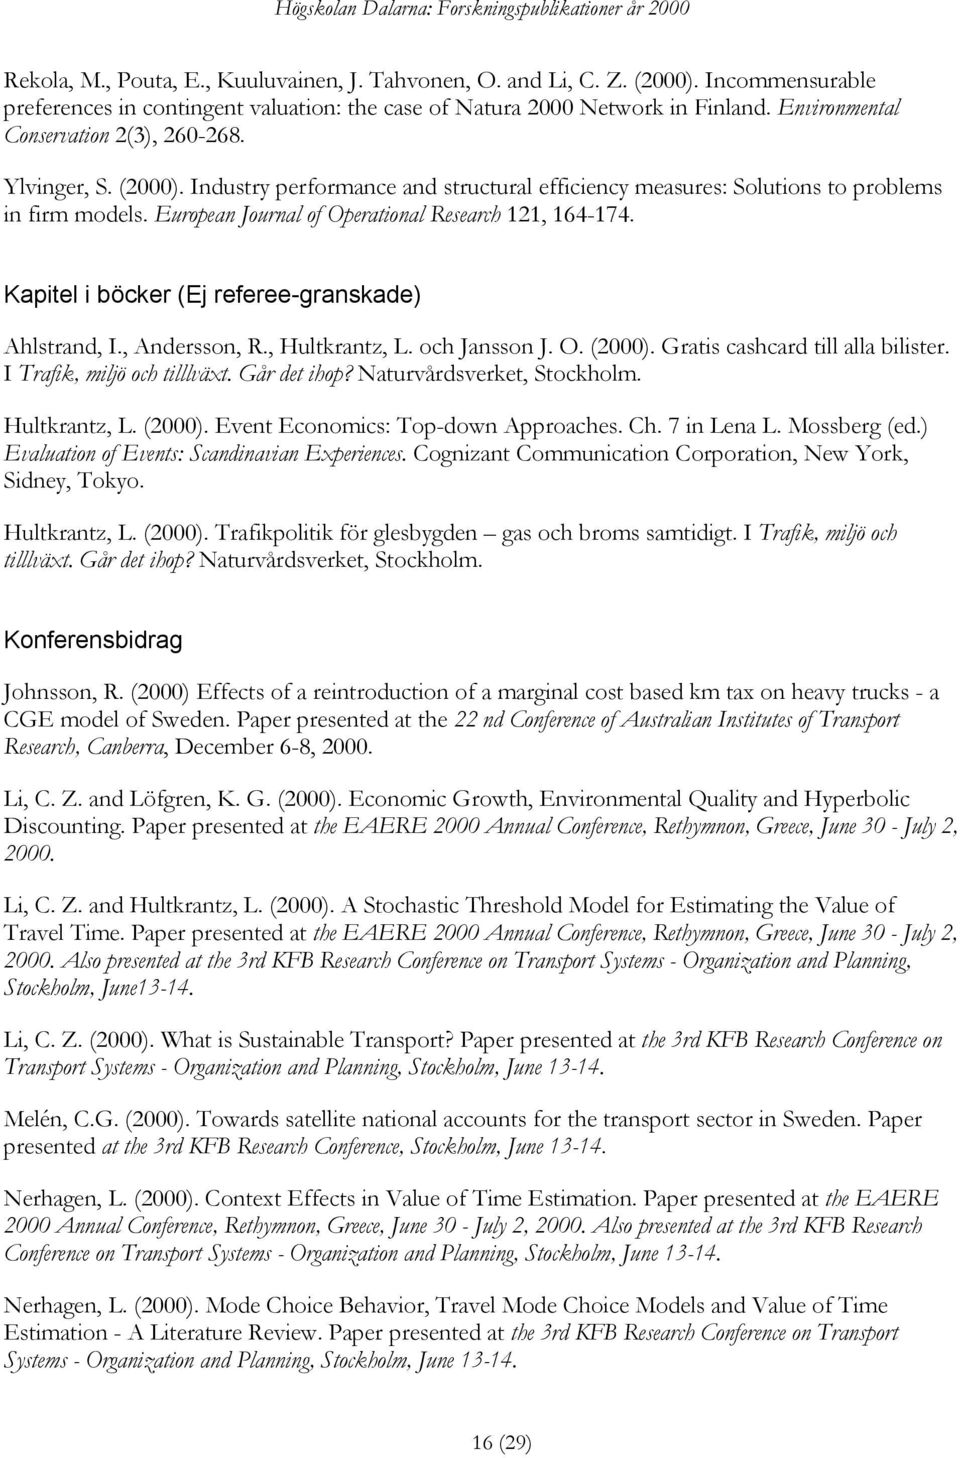 European Journal of Operational Research 121, 164-174. Kapitel i böcker (Ej referee-granskade) Ahlstrand, I., Andersson, R., Hultkrantz, L. och Jansson J. O. (2000).